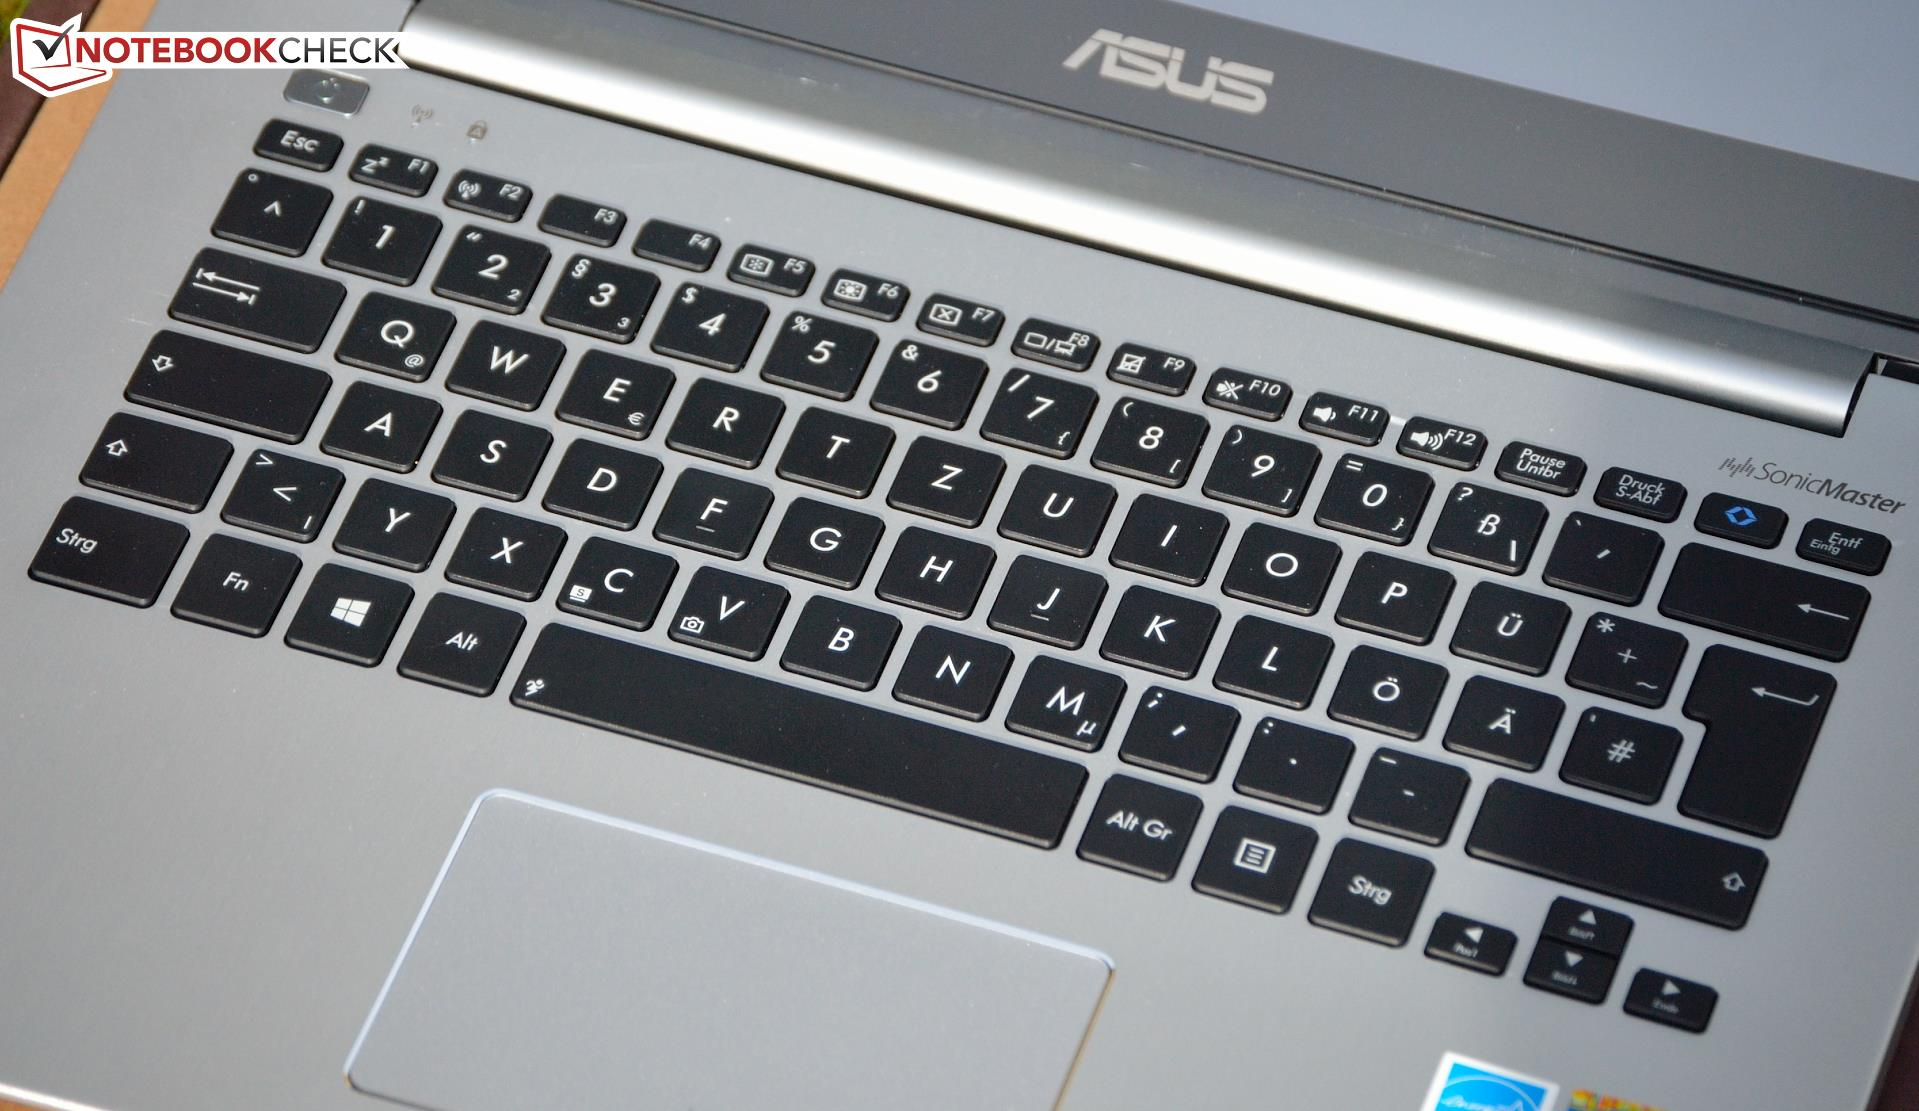 ASUS VivoBook S301LA Keyboard Drivers for Windows